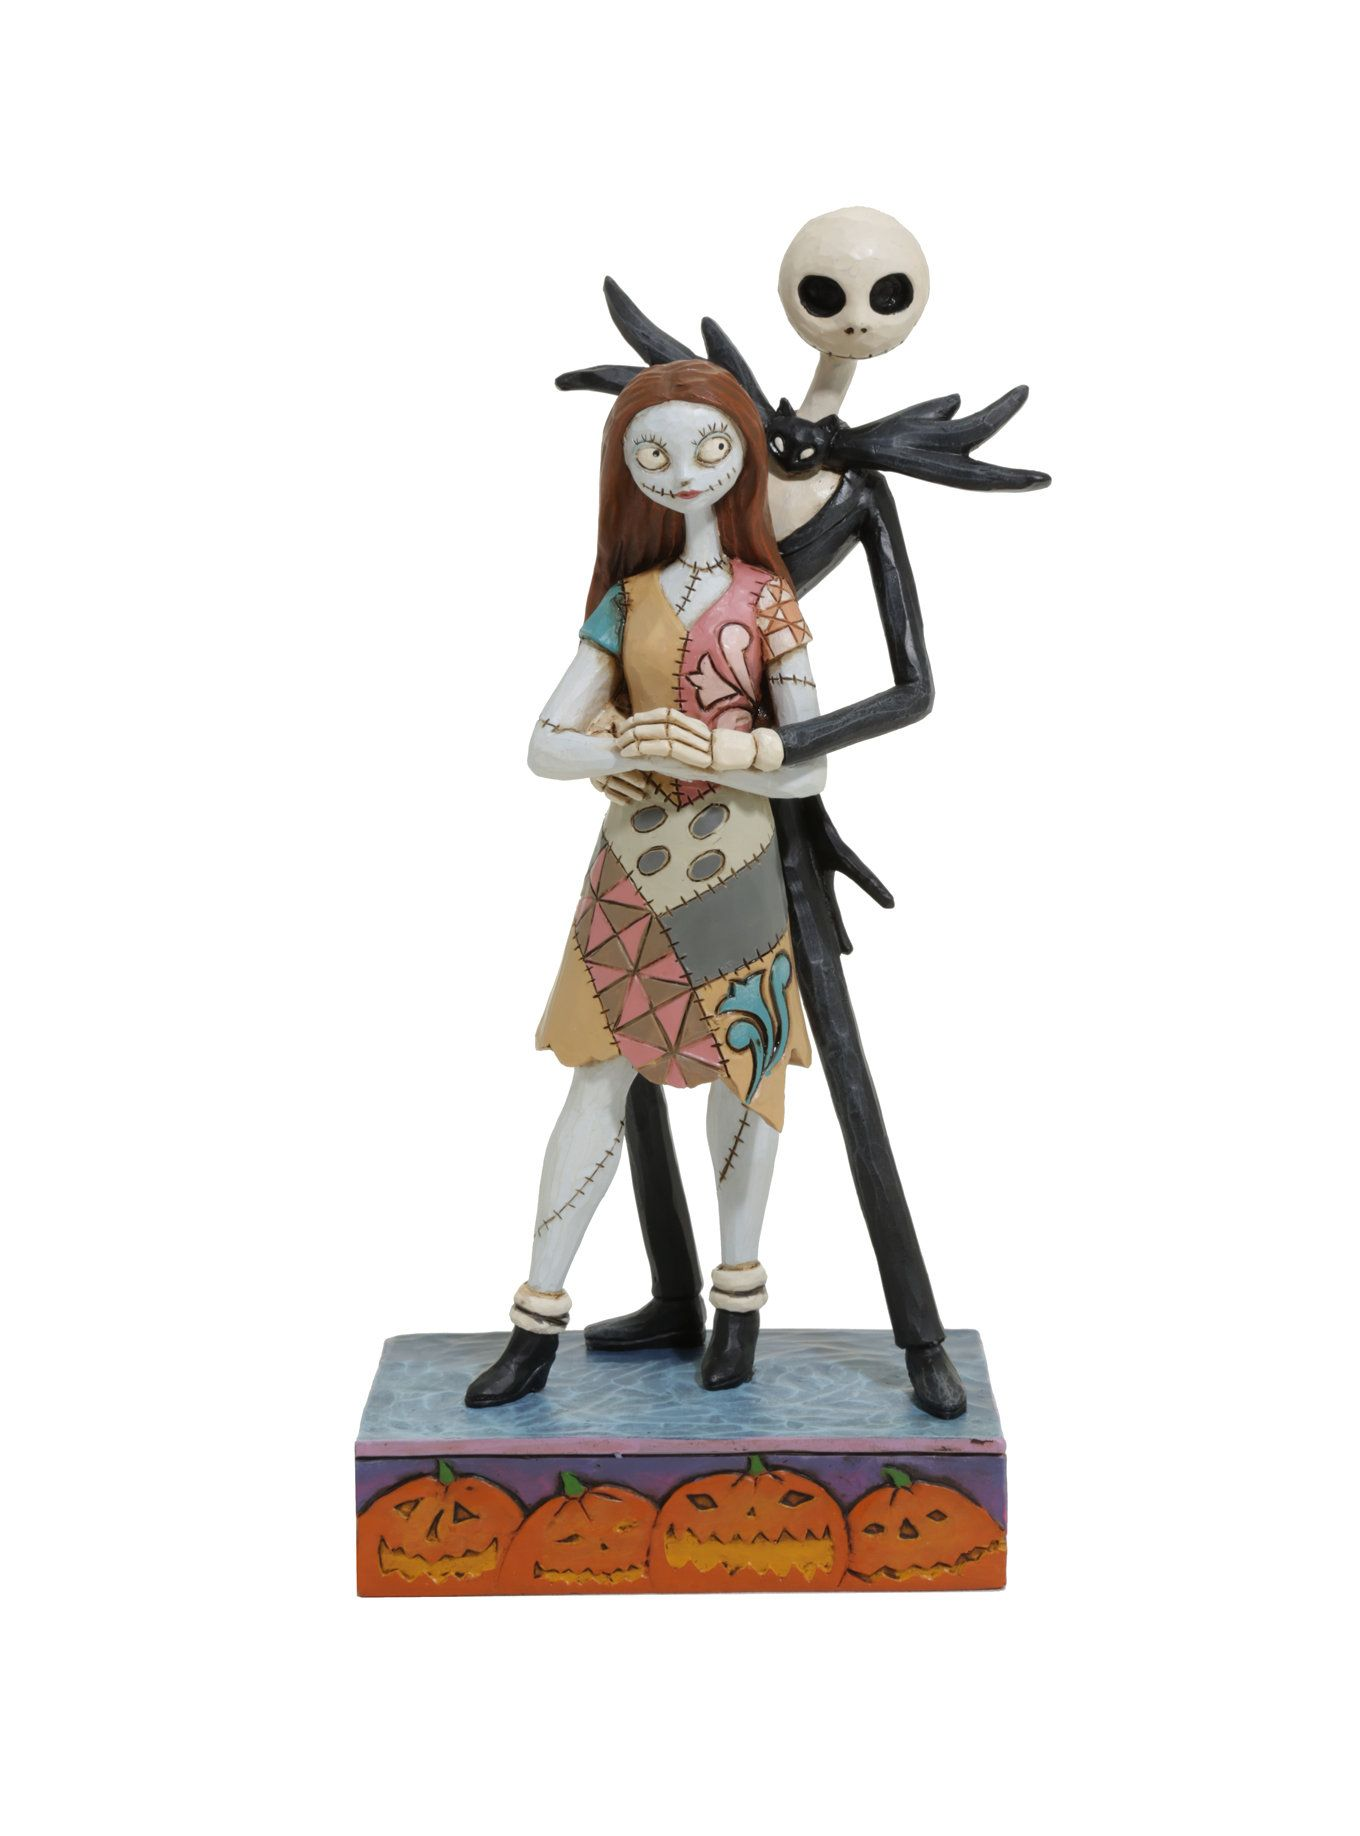 Hand Painted Fated Romance Stone Resin Figurine From The Disney Traditions Collection By Jim Shore Capturing A Tender Moment Between Jack Skellington